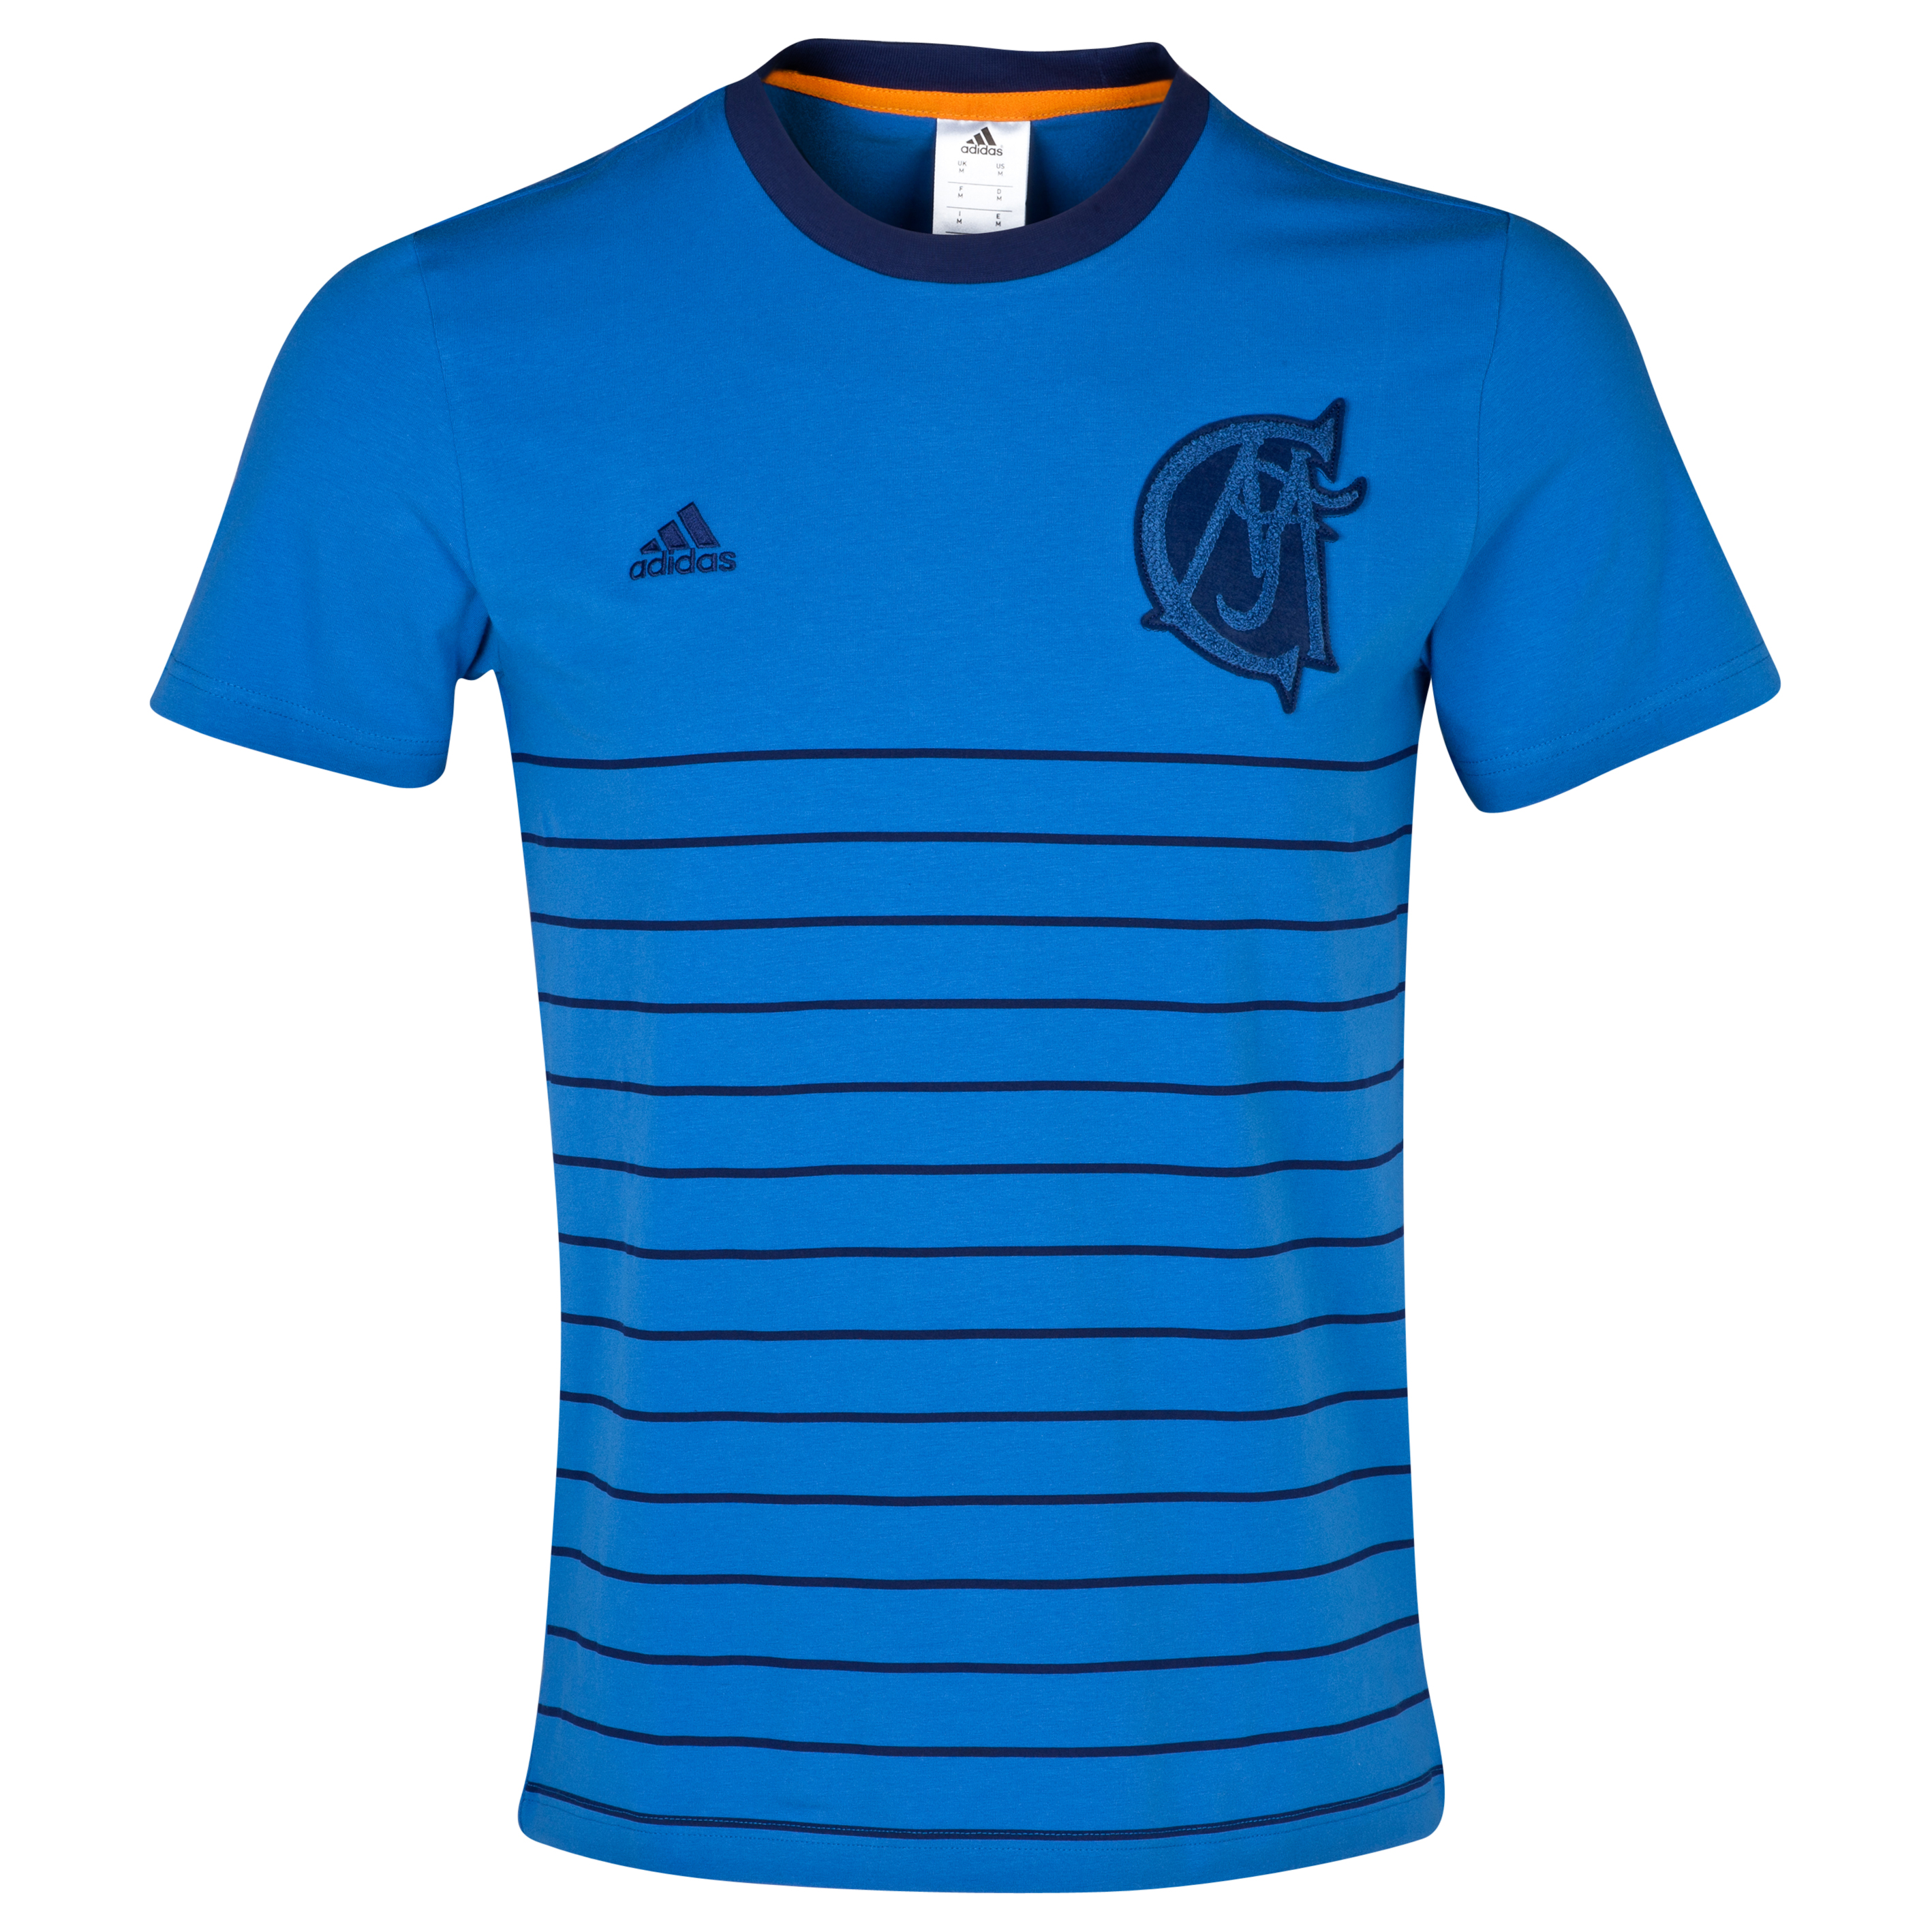 Real Madrid Authentic T-Shirt - Mens Blue